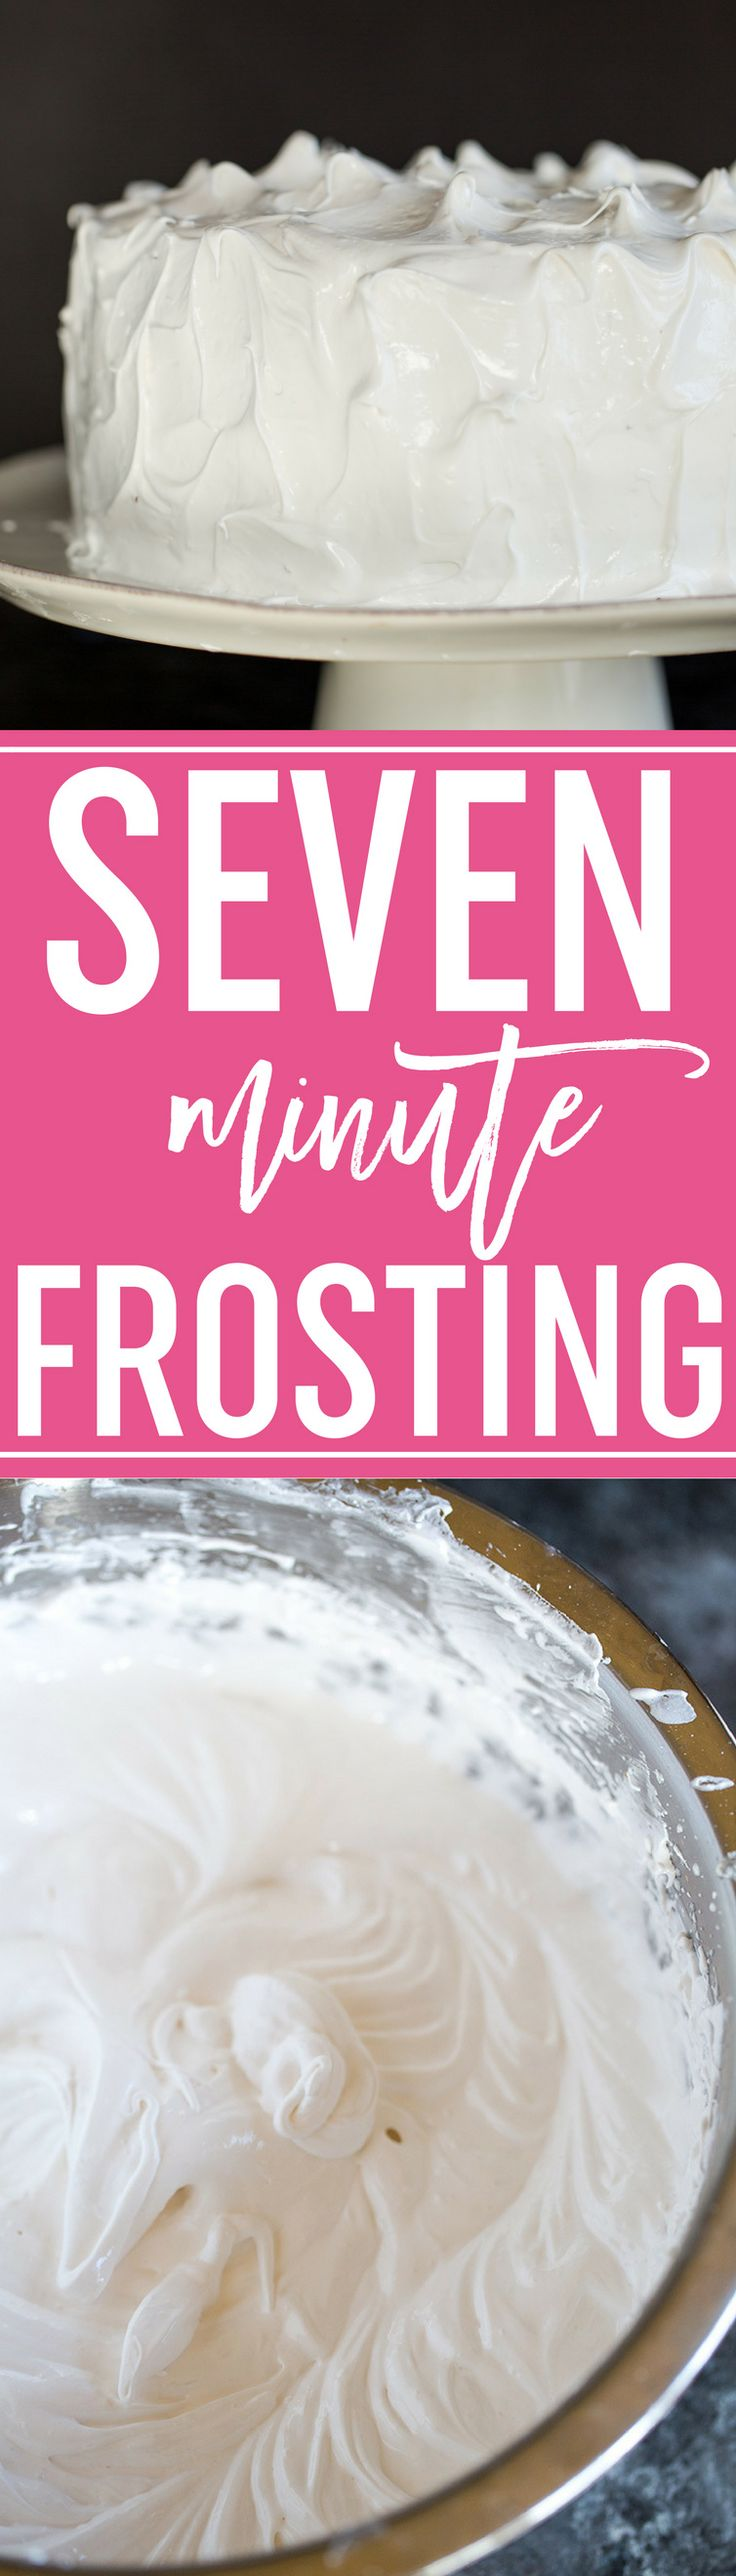 7 Minute Frosting :: The classic meringue or marshmallow-like frosting that is light, fluffy, and holds perfect peaks. Great for cakes and cupcakes! #frosting #icing #sevenminute #cake #easy